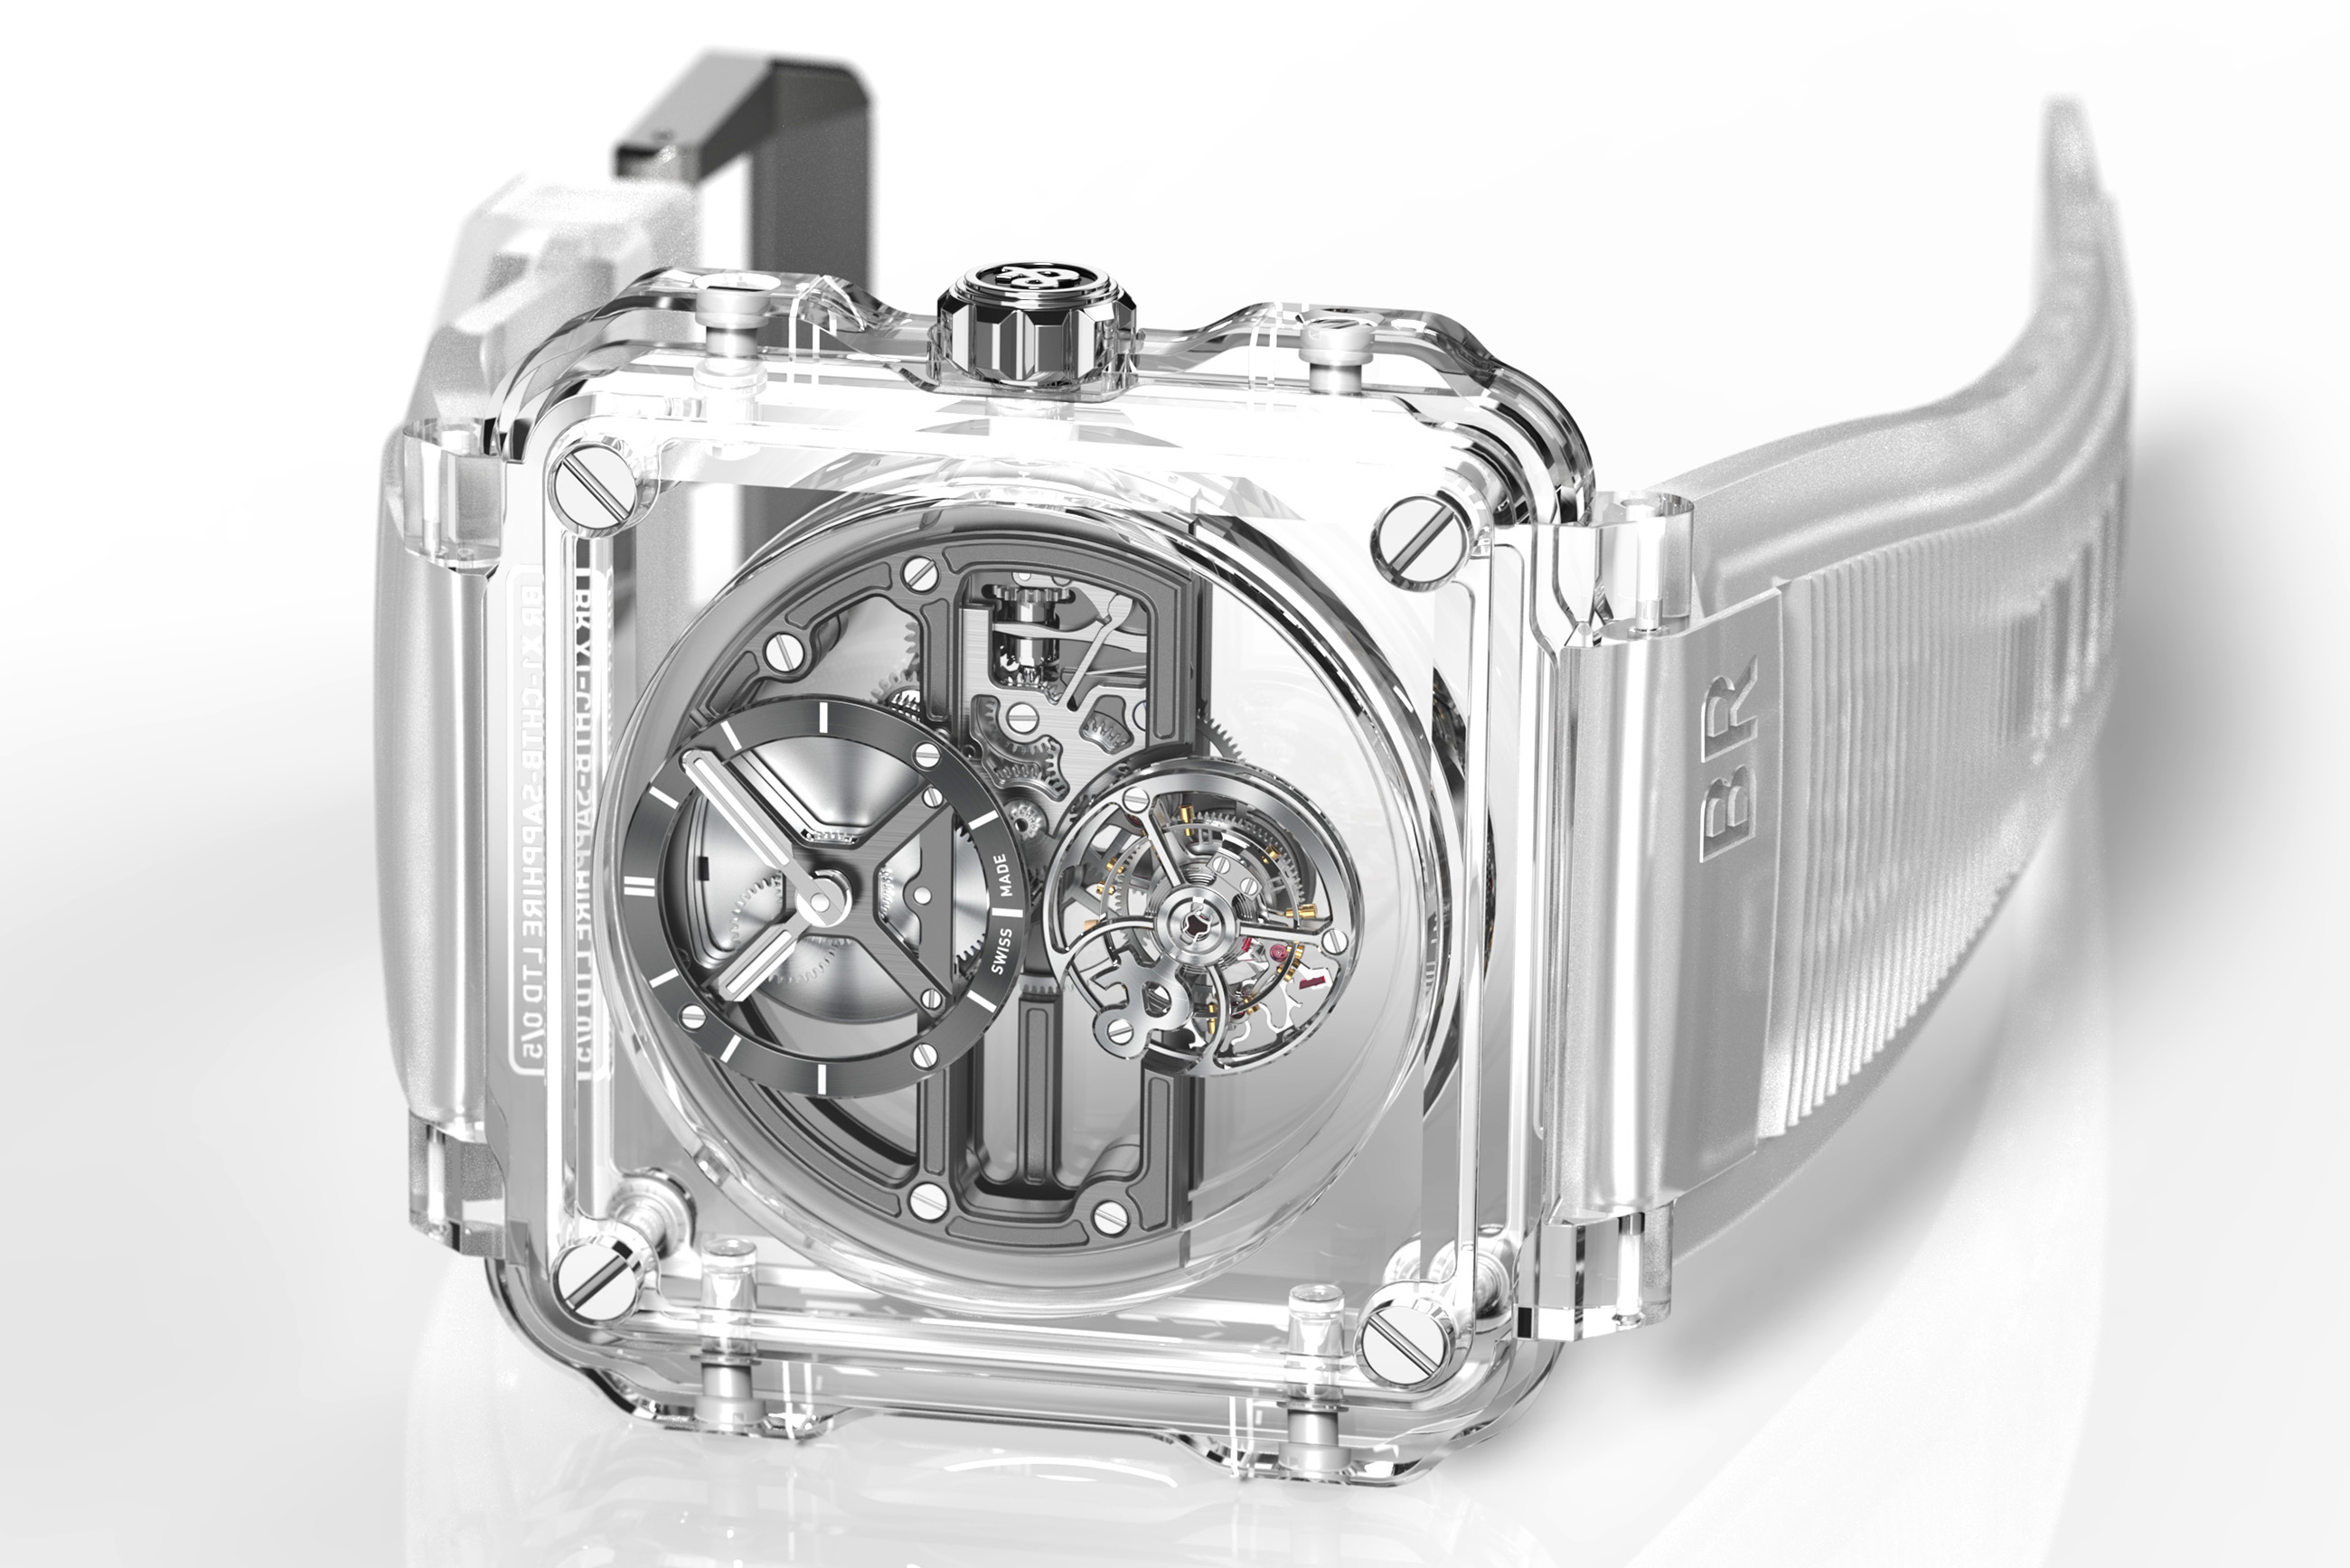 SB-NM_BR-X1-Tourbillon-Skeleton-Sapphire_01 copy